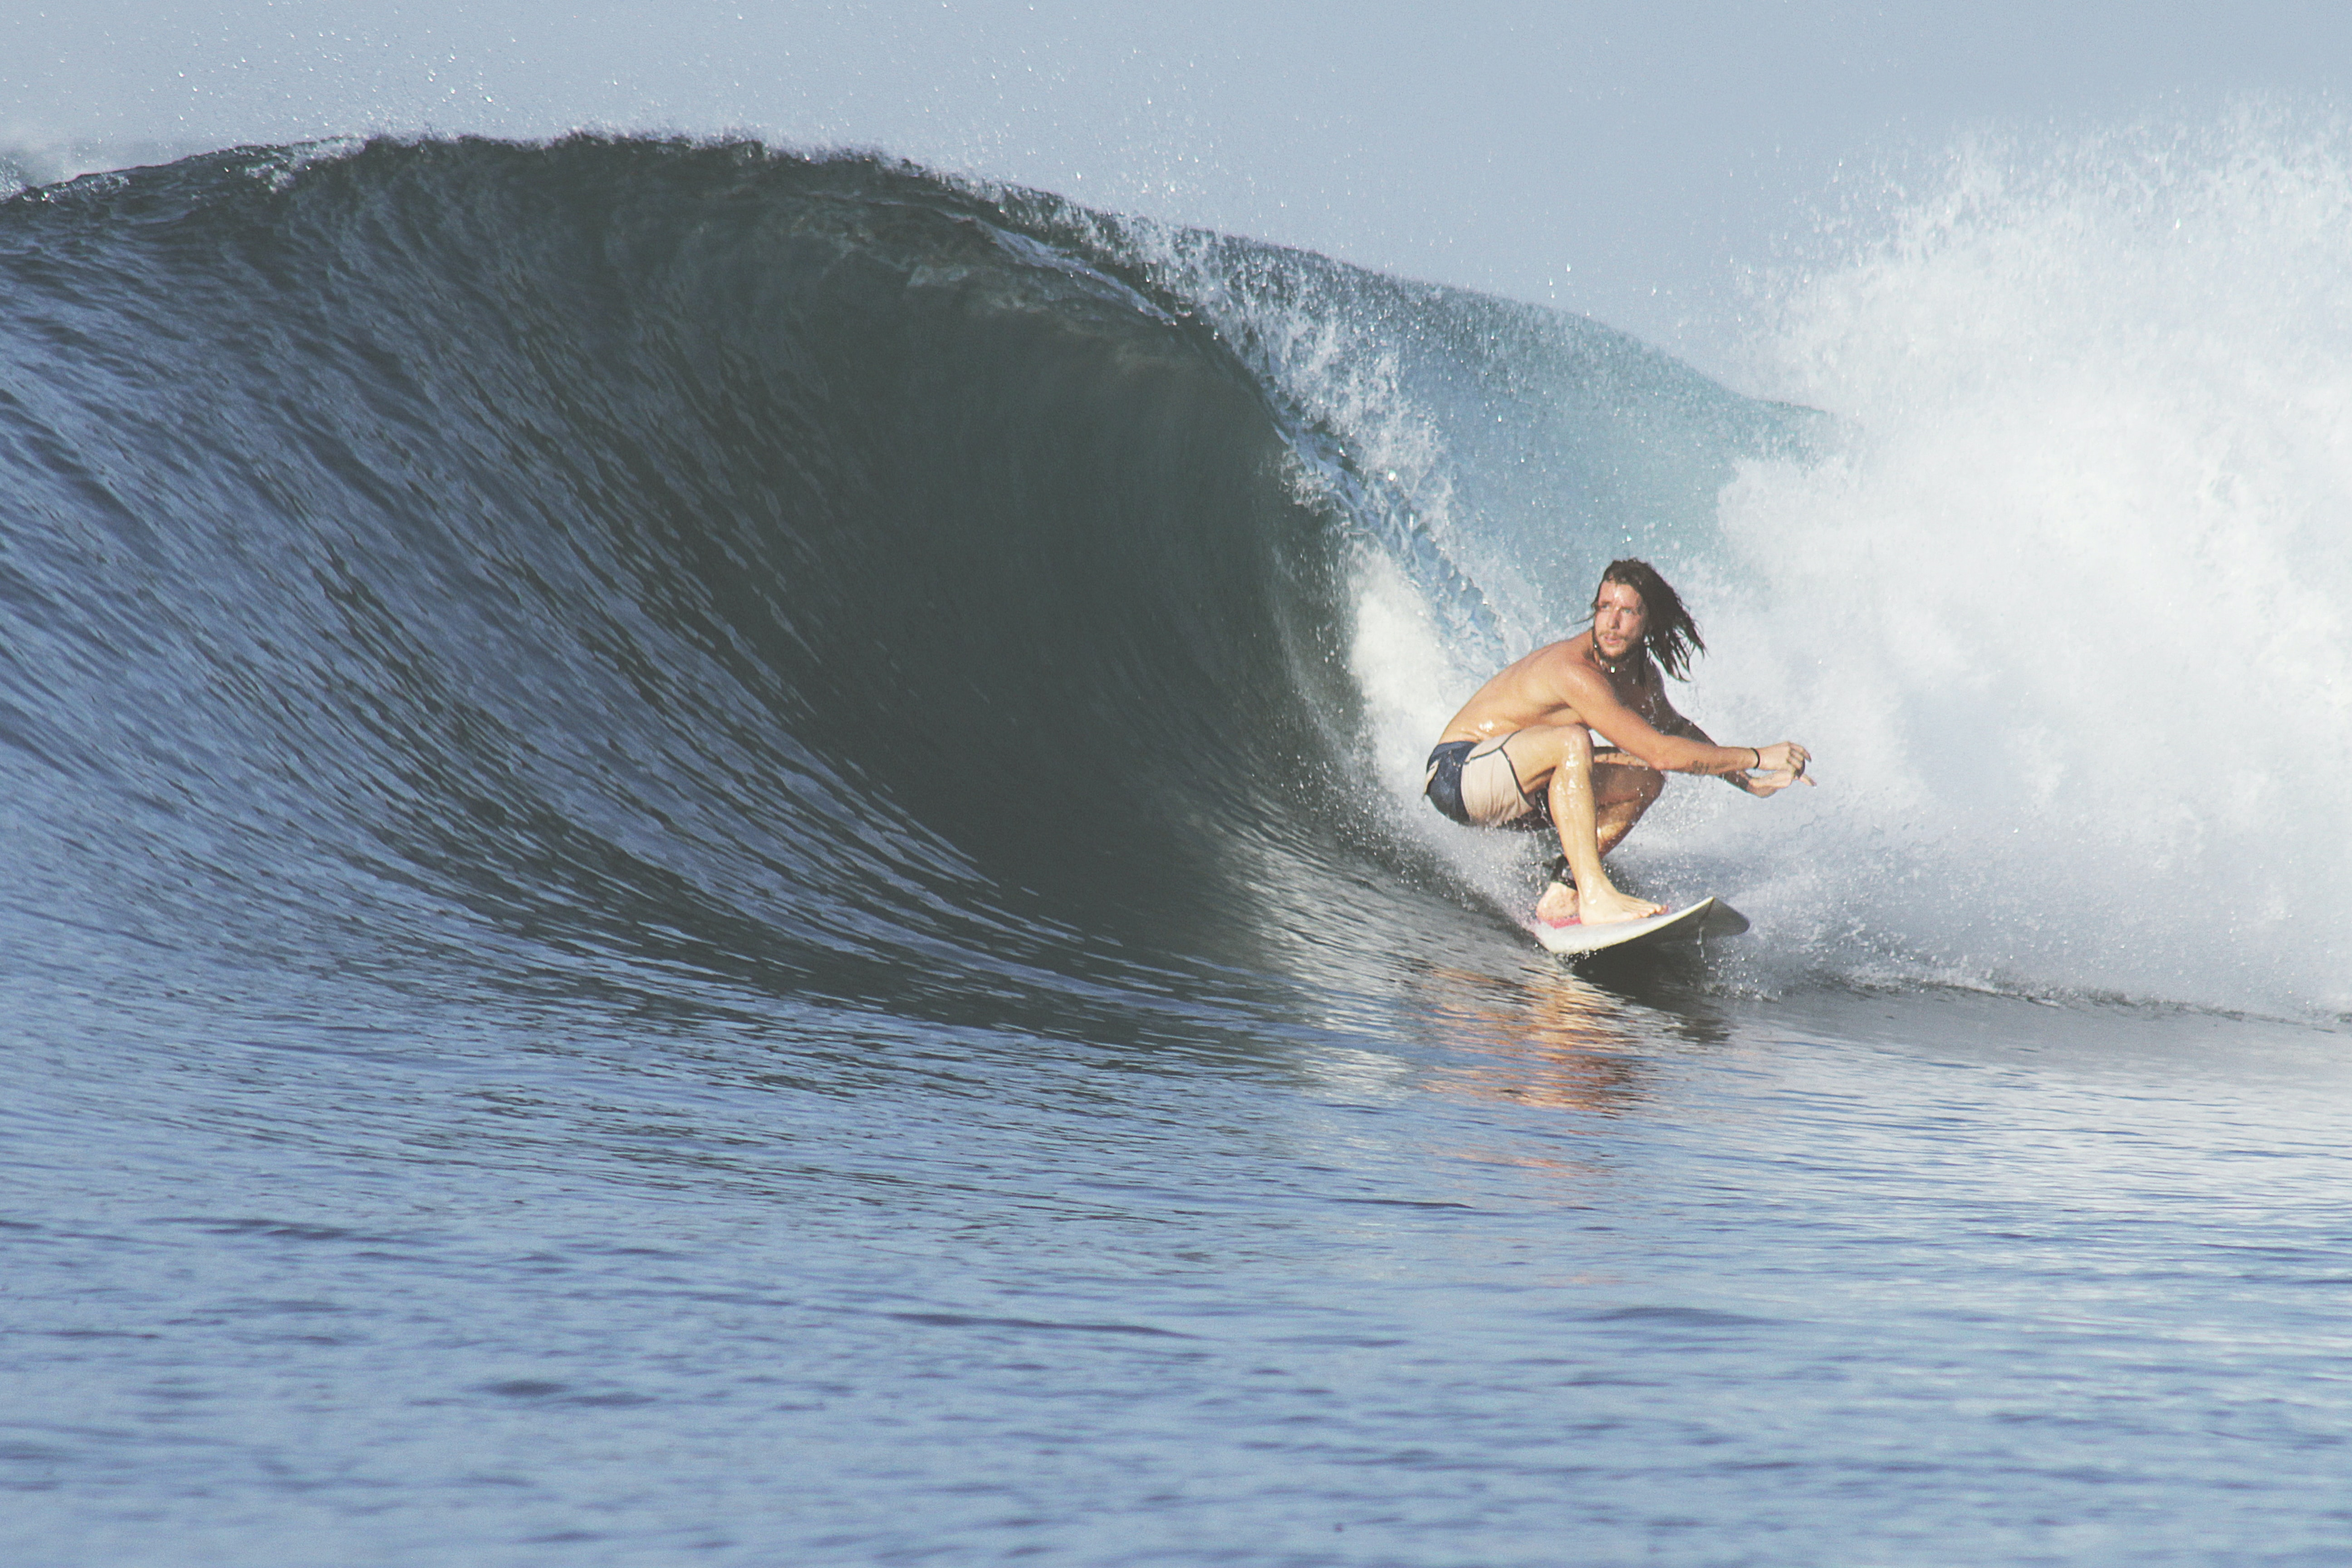 A male surfer with long head, wearing board shorts, crouching as he rides a cresting wave at Sumbawa